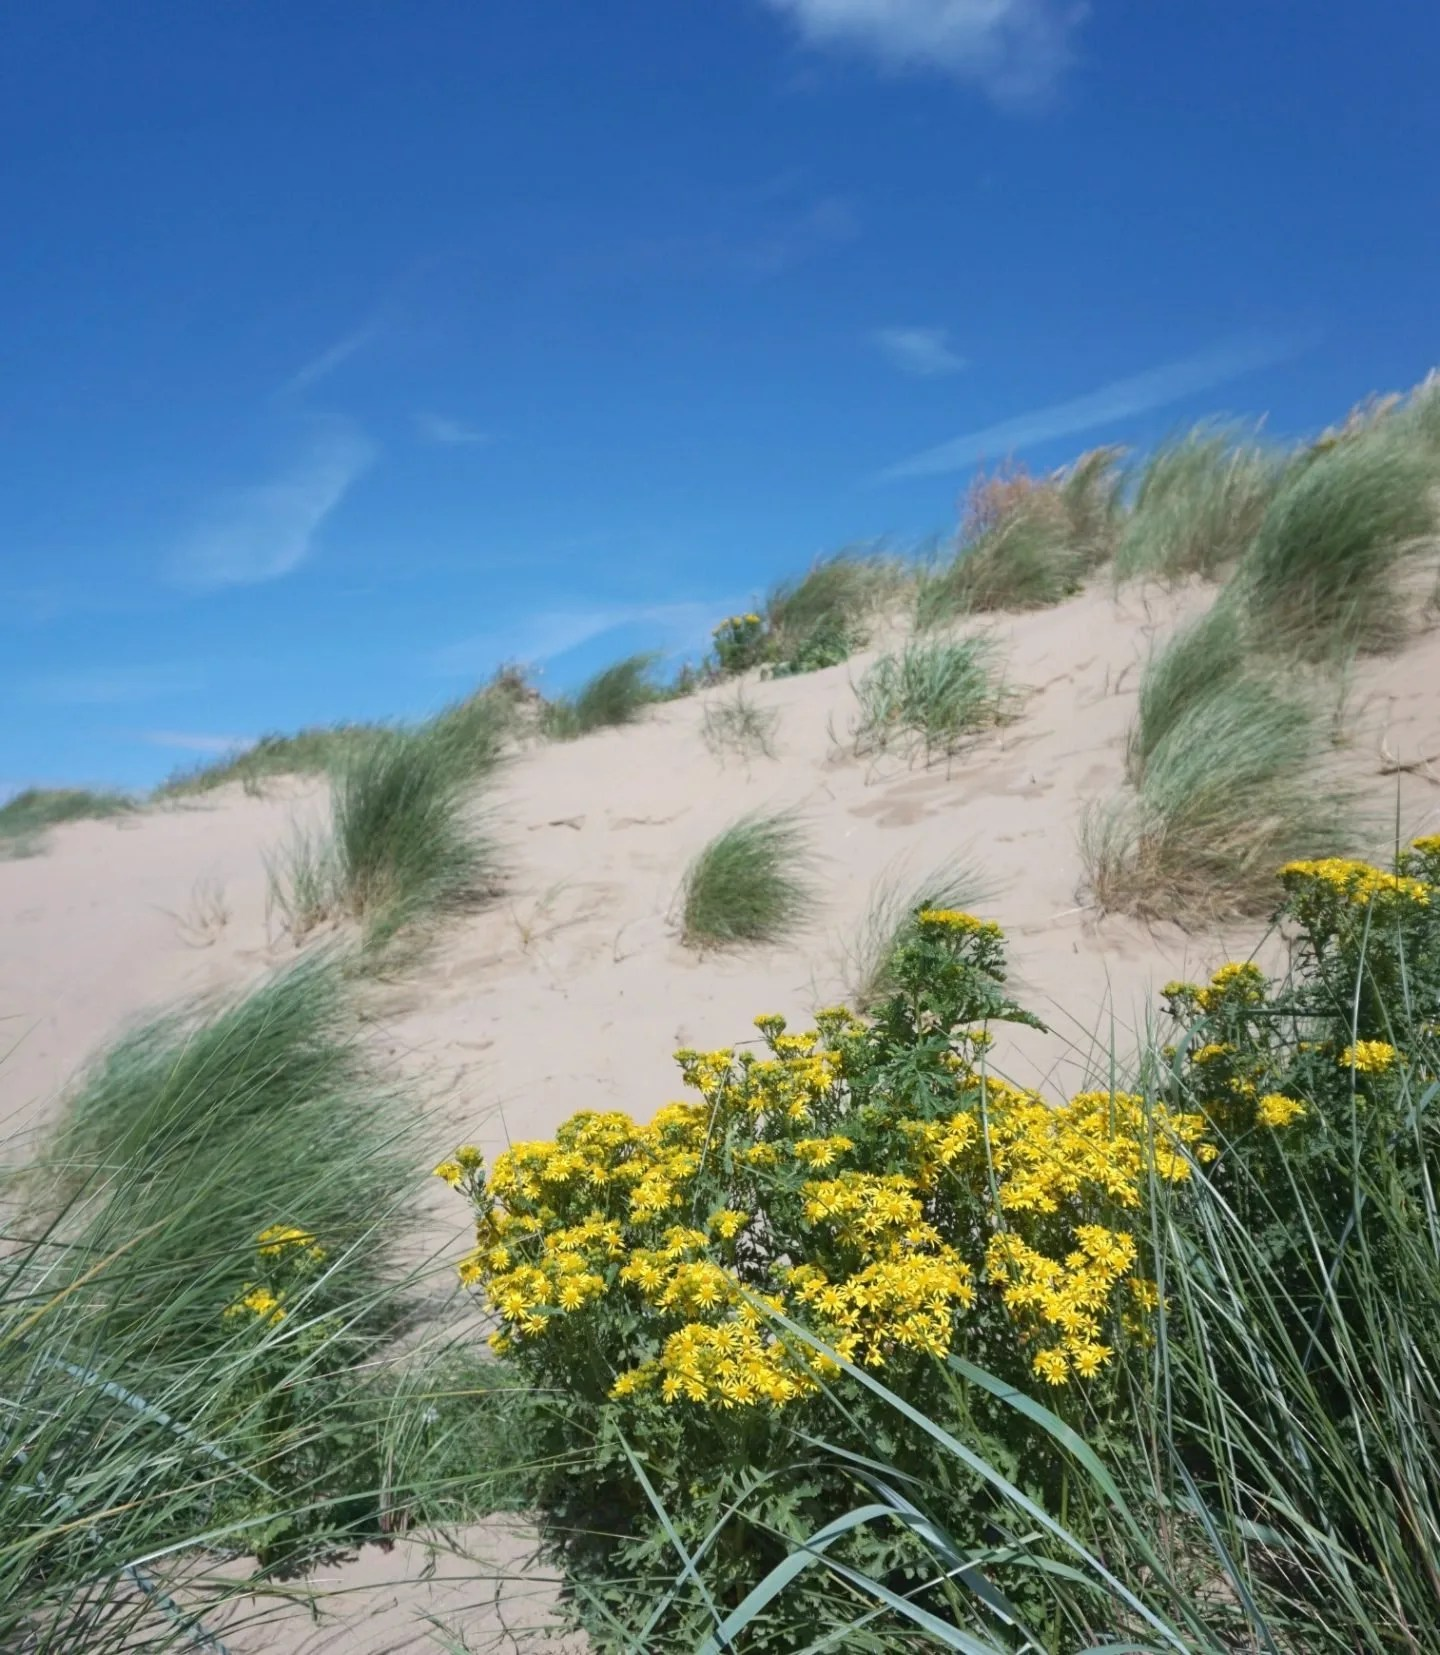 Flowers on The Sand Dunes At St Annes www.extraordinarychaos.com